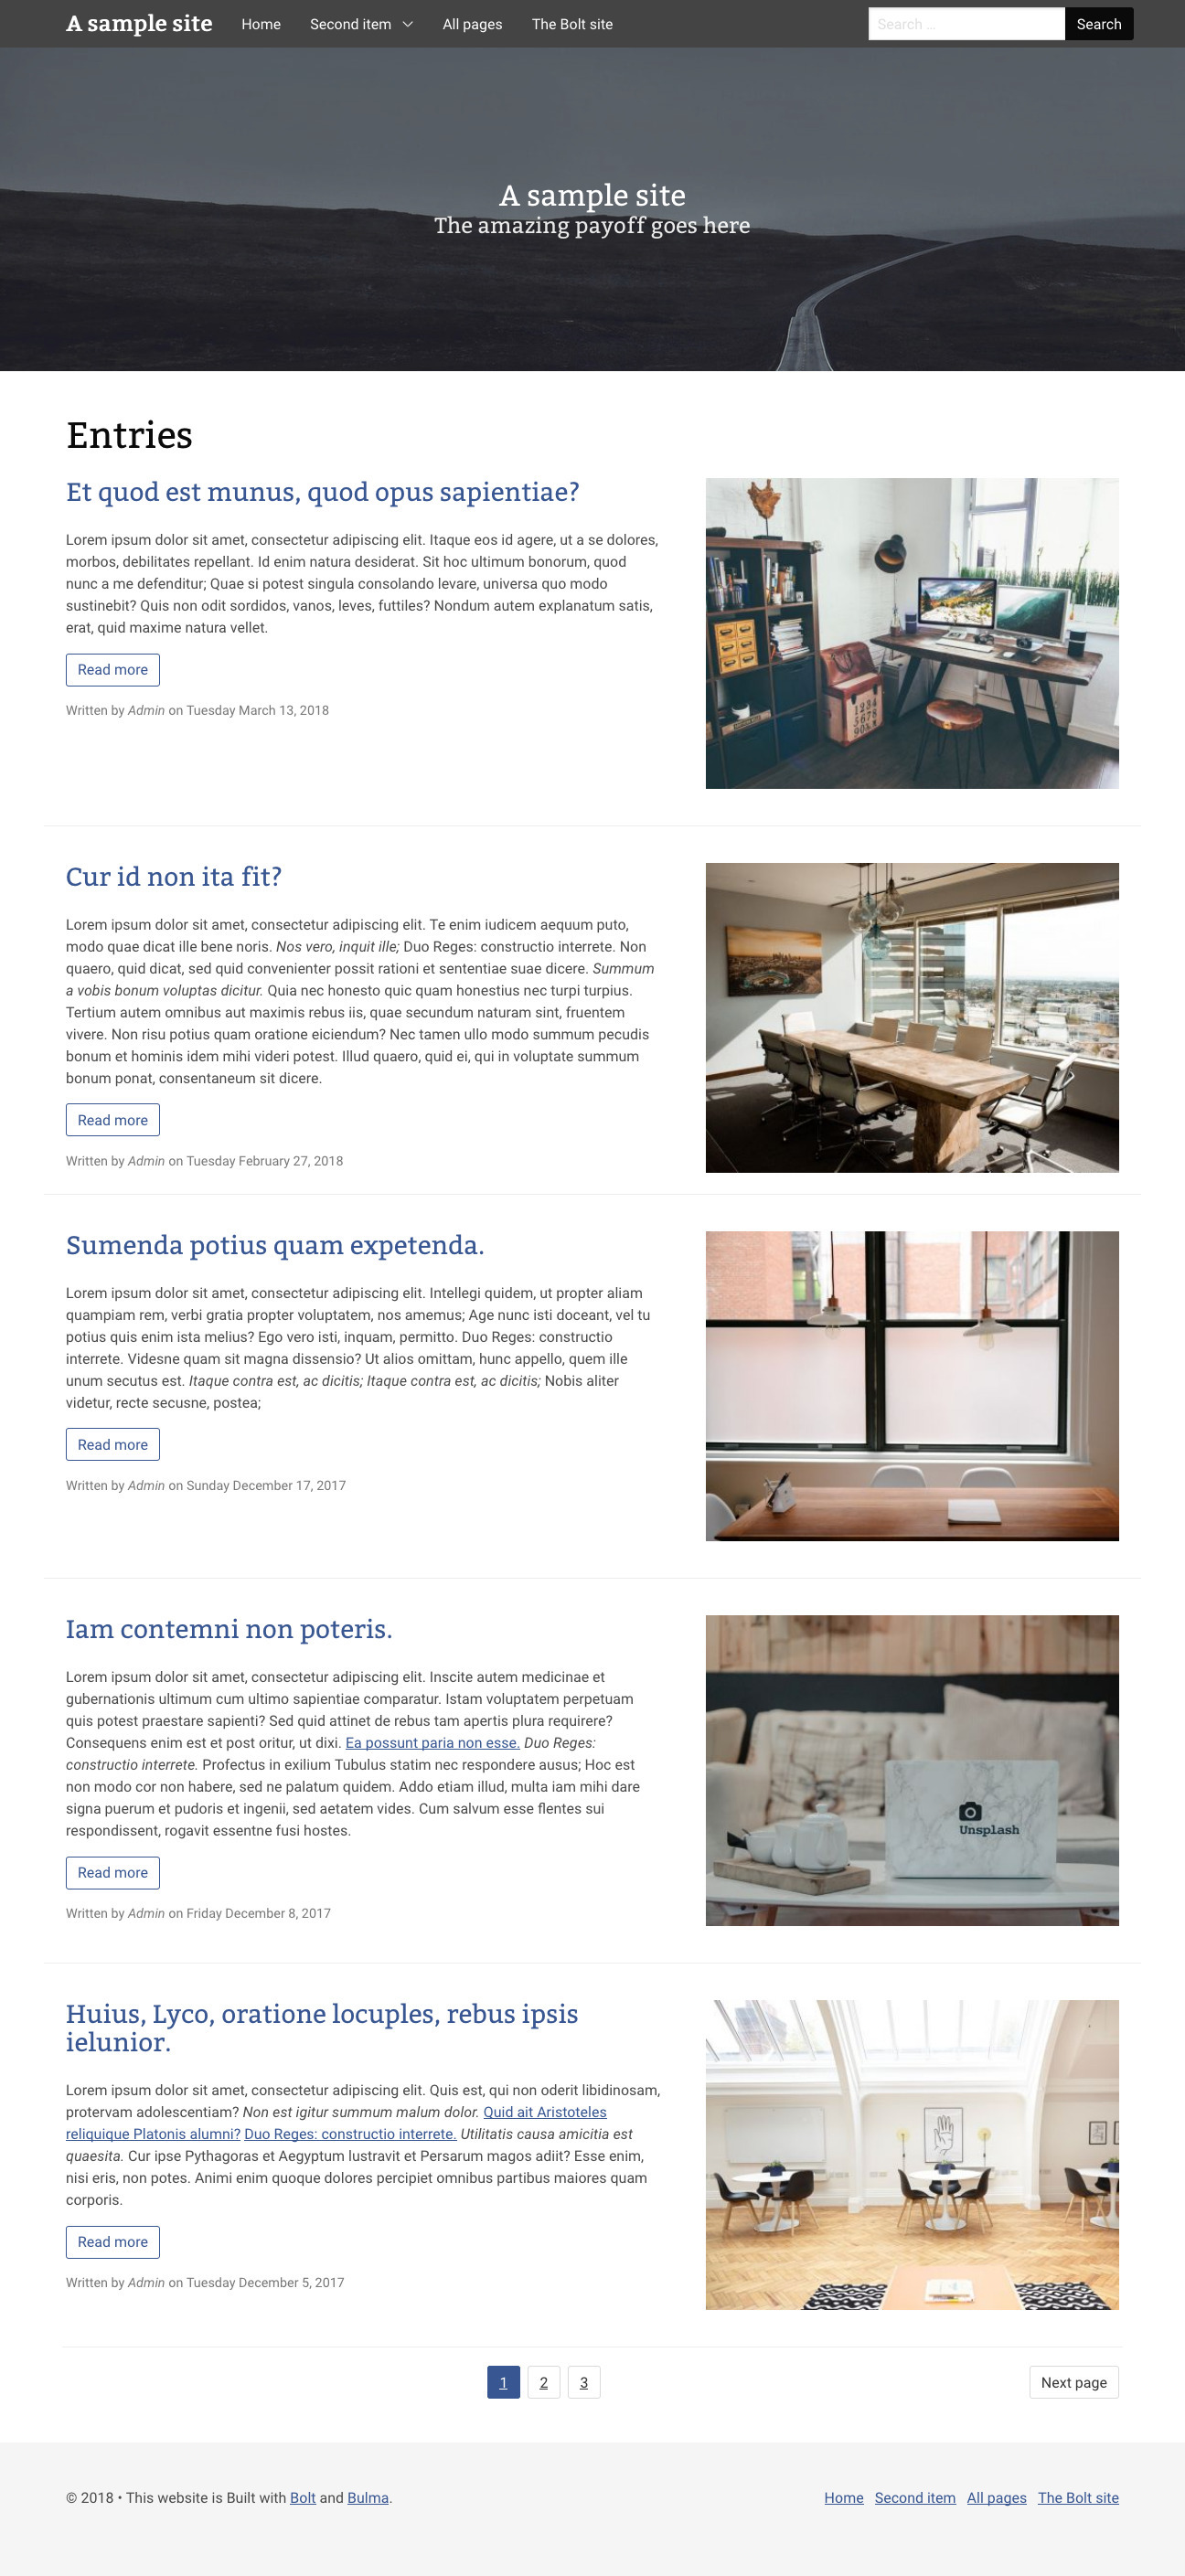 screenshot-2018-3-13 a sample site the amazing payoff goes here